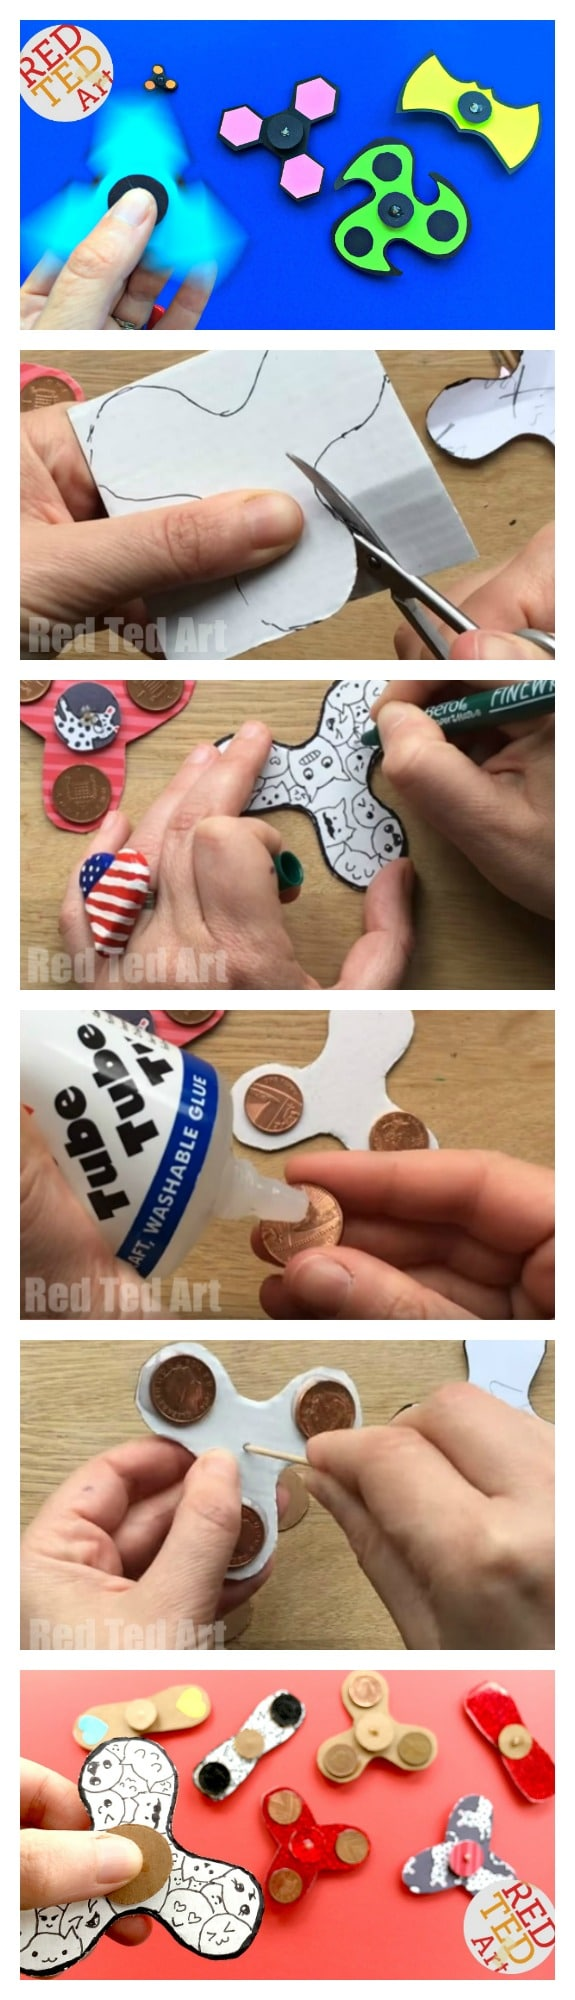 These DIY Fidget Spinners without bearings are SO COOL. You can now download the free Printable DIY Fidget Spinner instructions. A free step by step guide to making fidget spinners. Perfect for Youth Groups, Summer Camps, Schools or Library Schemes. Includes free Fidget Spinner DIY Templates too.